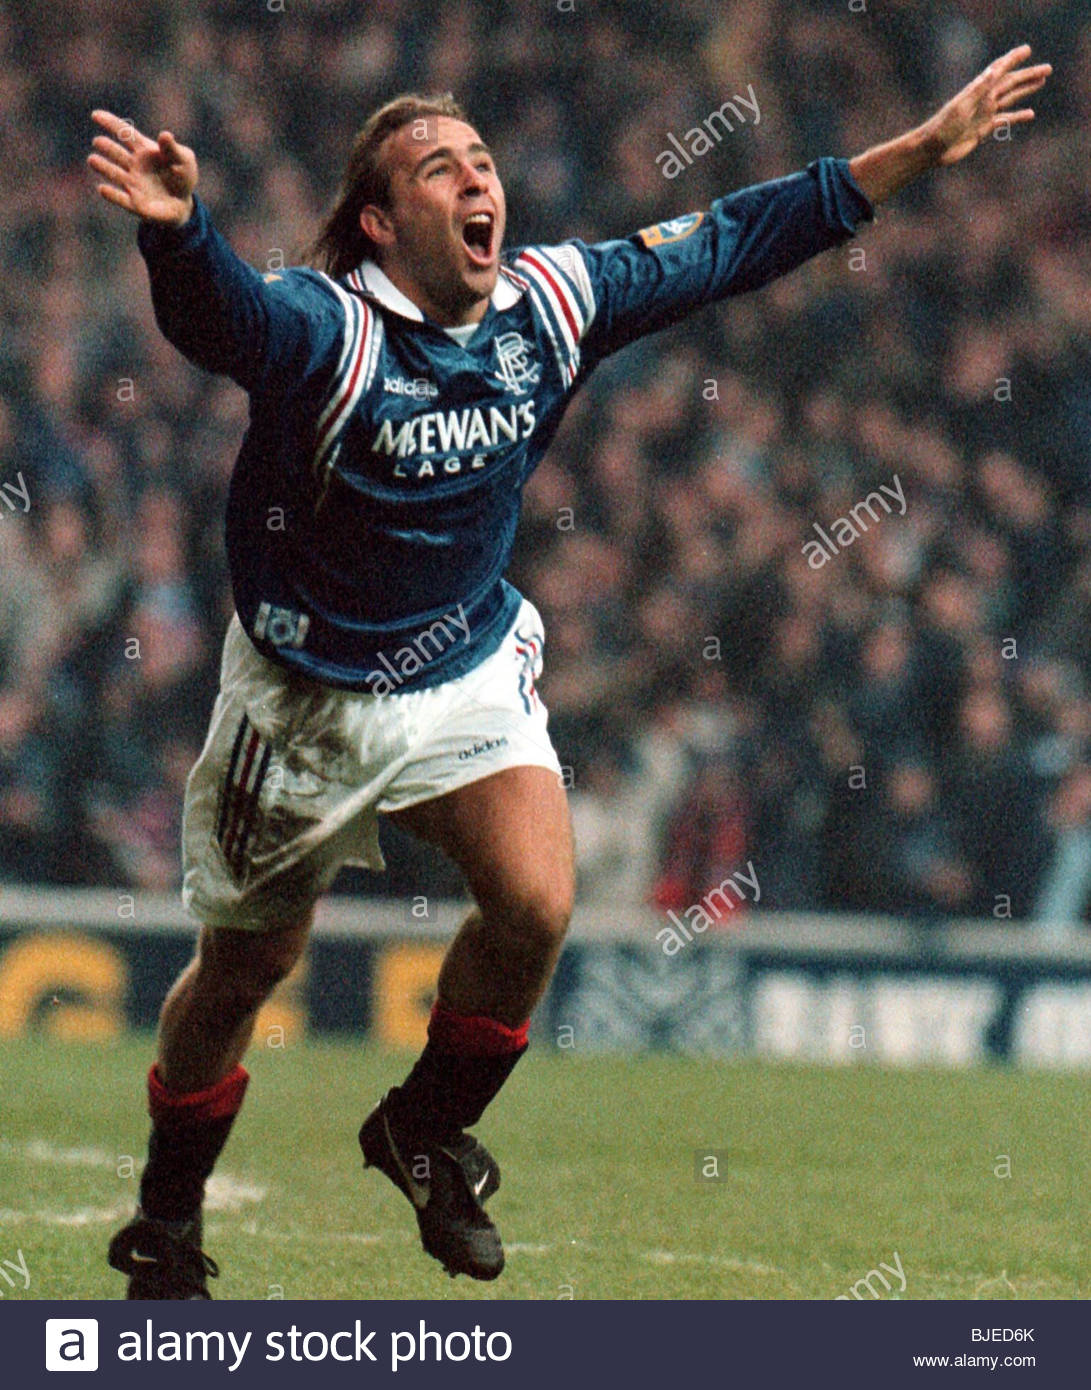 25/01/97 TENNENT'S SCOTTISH CUP 3RD RND RANGERS V ST JOHNSTONE (2-0) IBROX - GLASGOW Sebastian Rozental celebrates - Stock Image